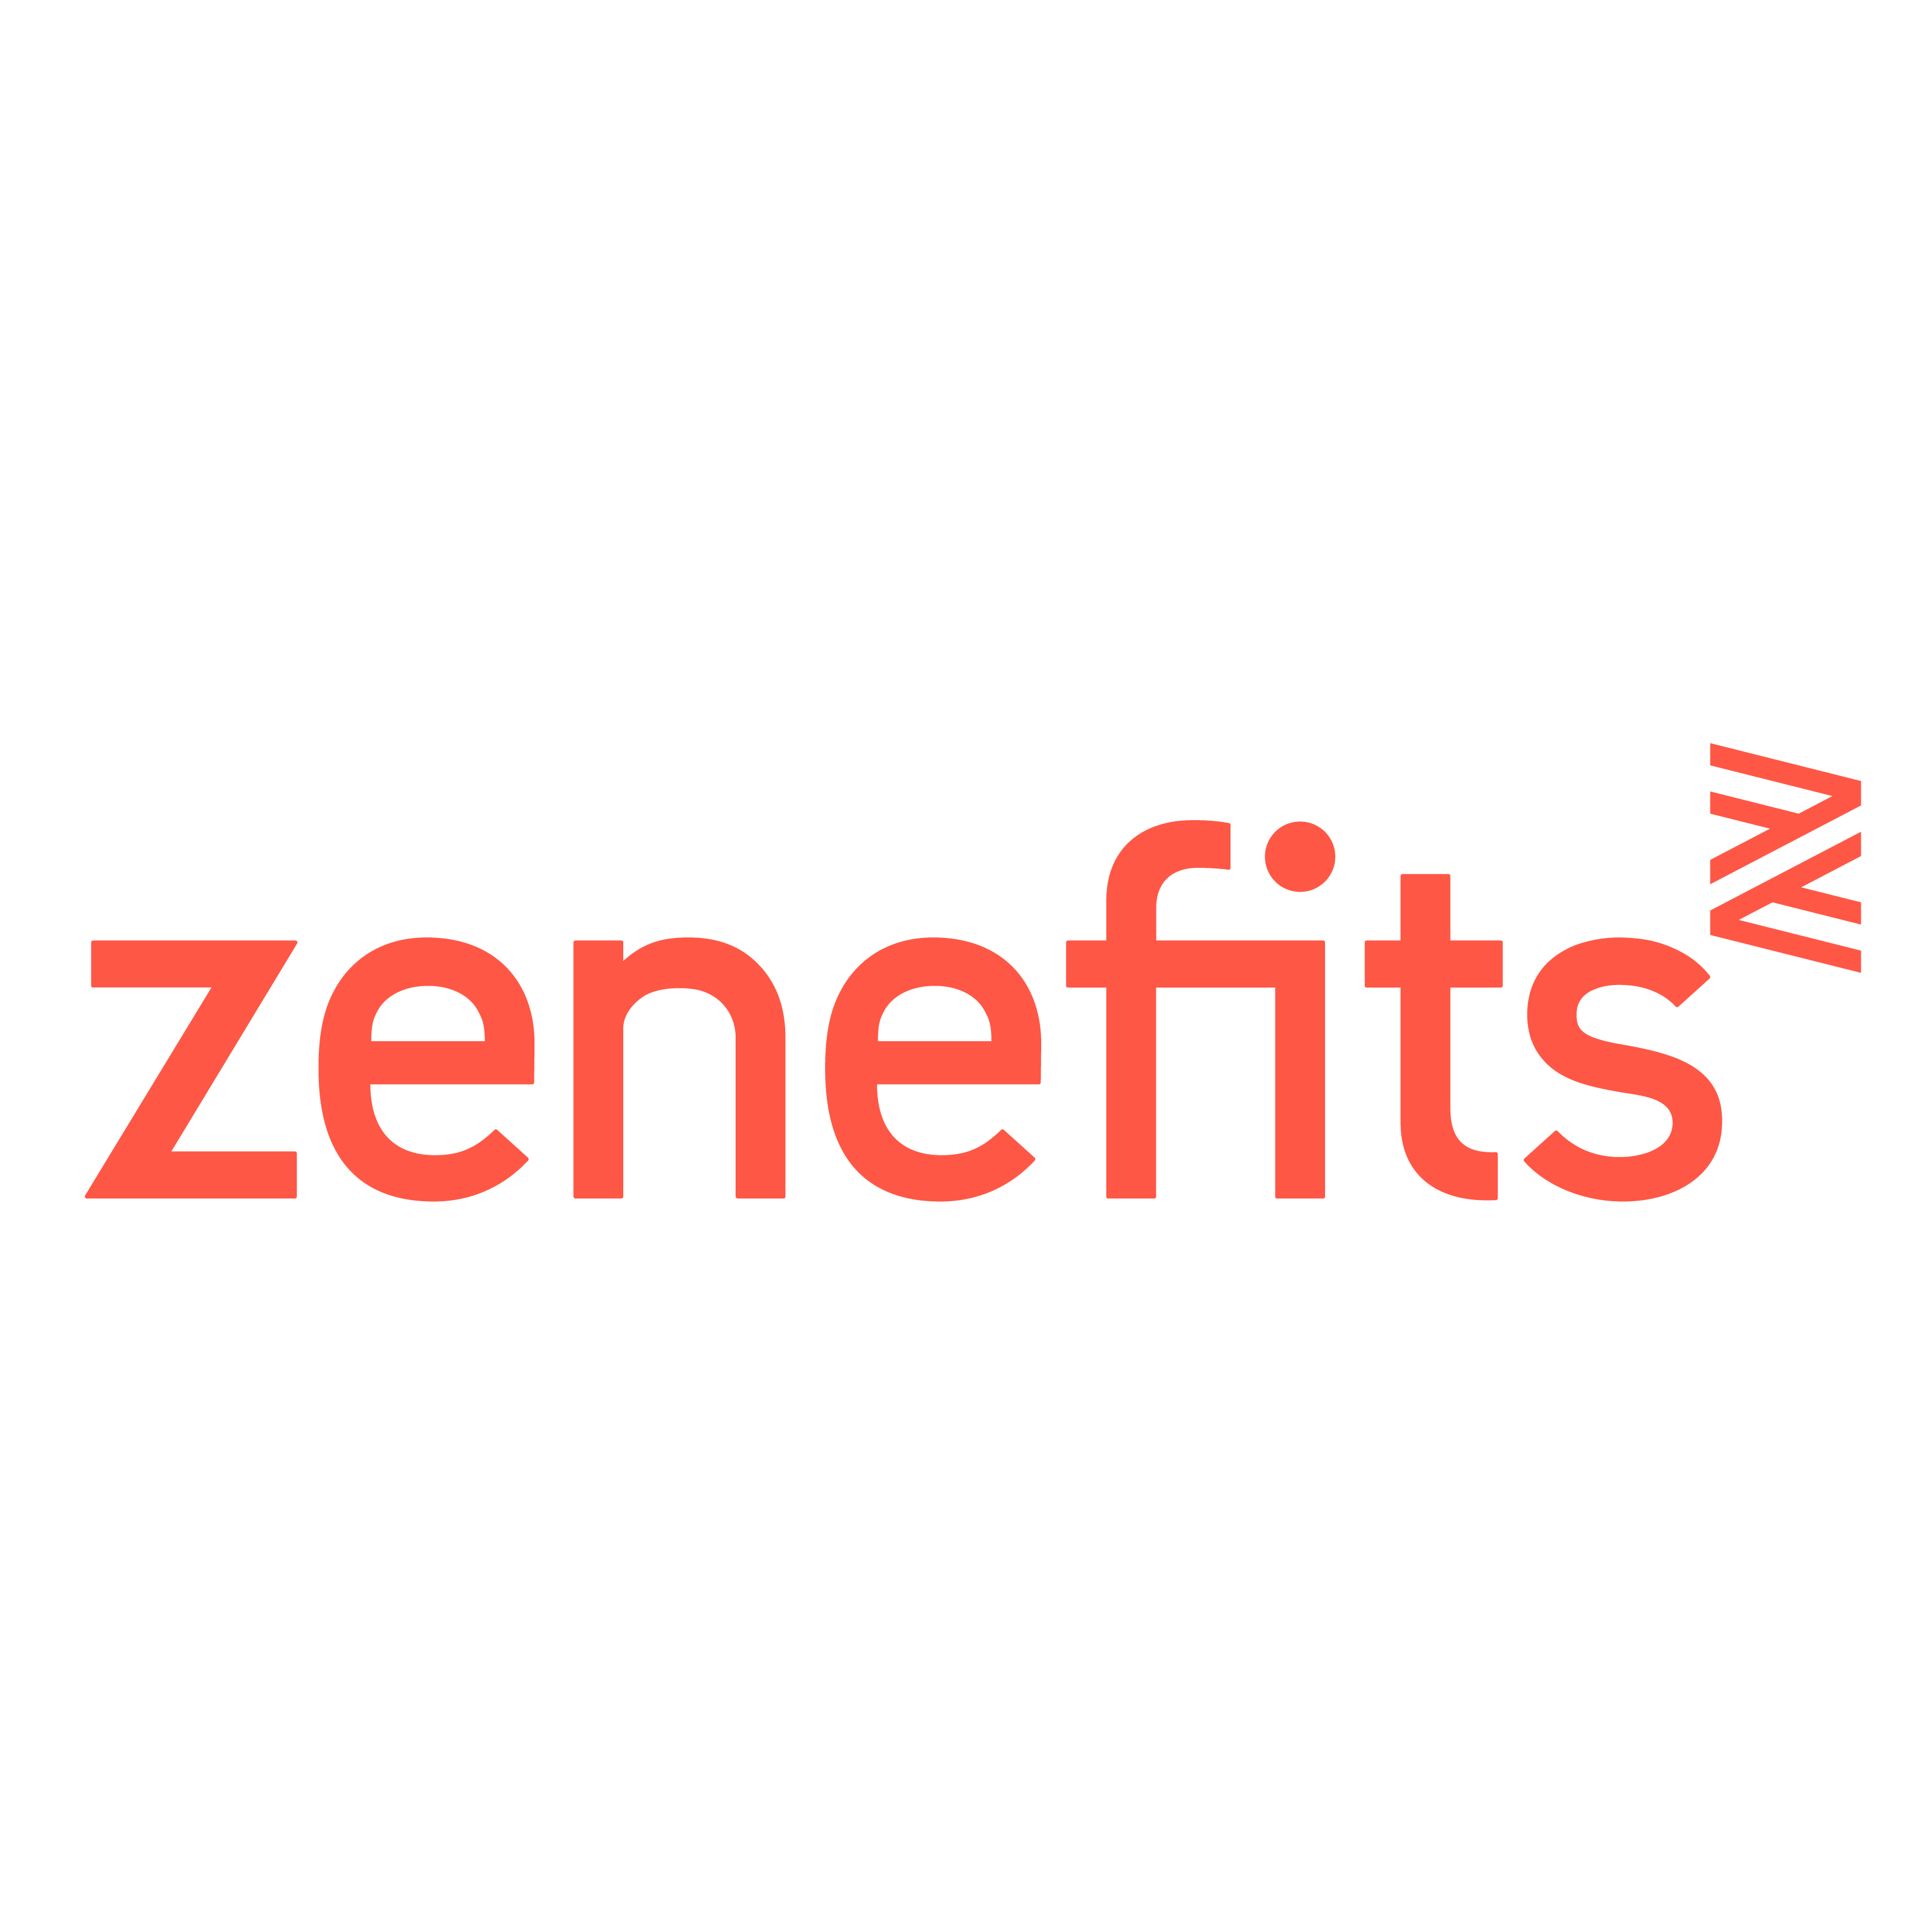 Zenefits Review.